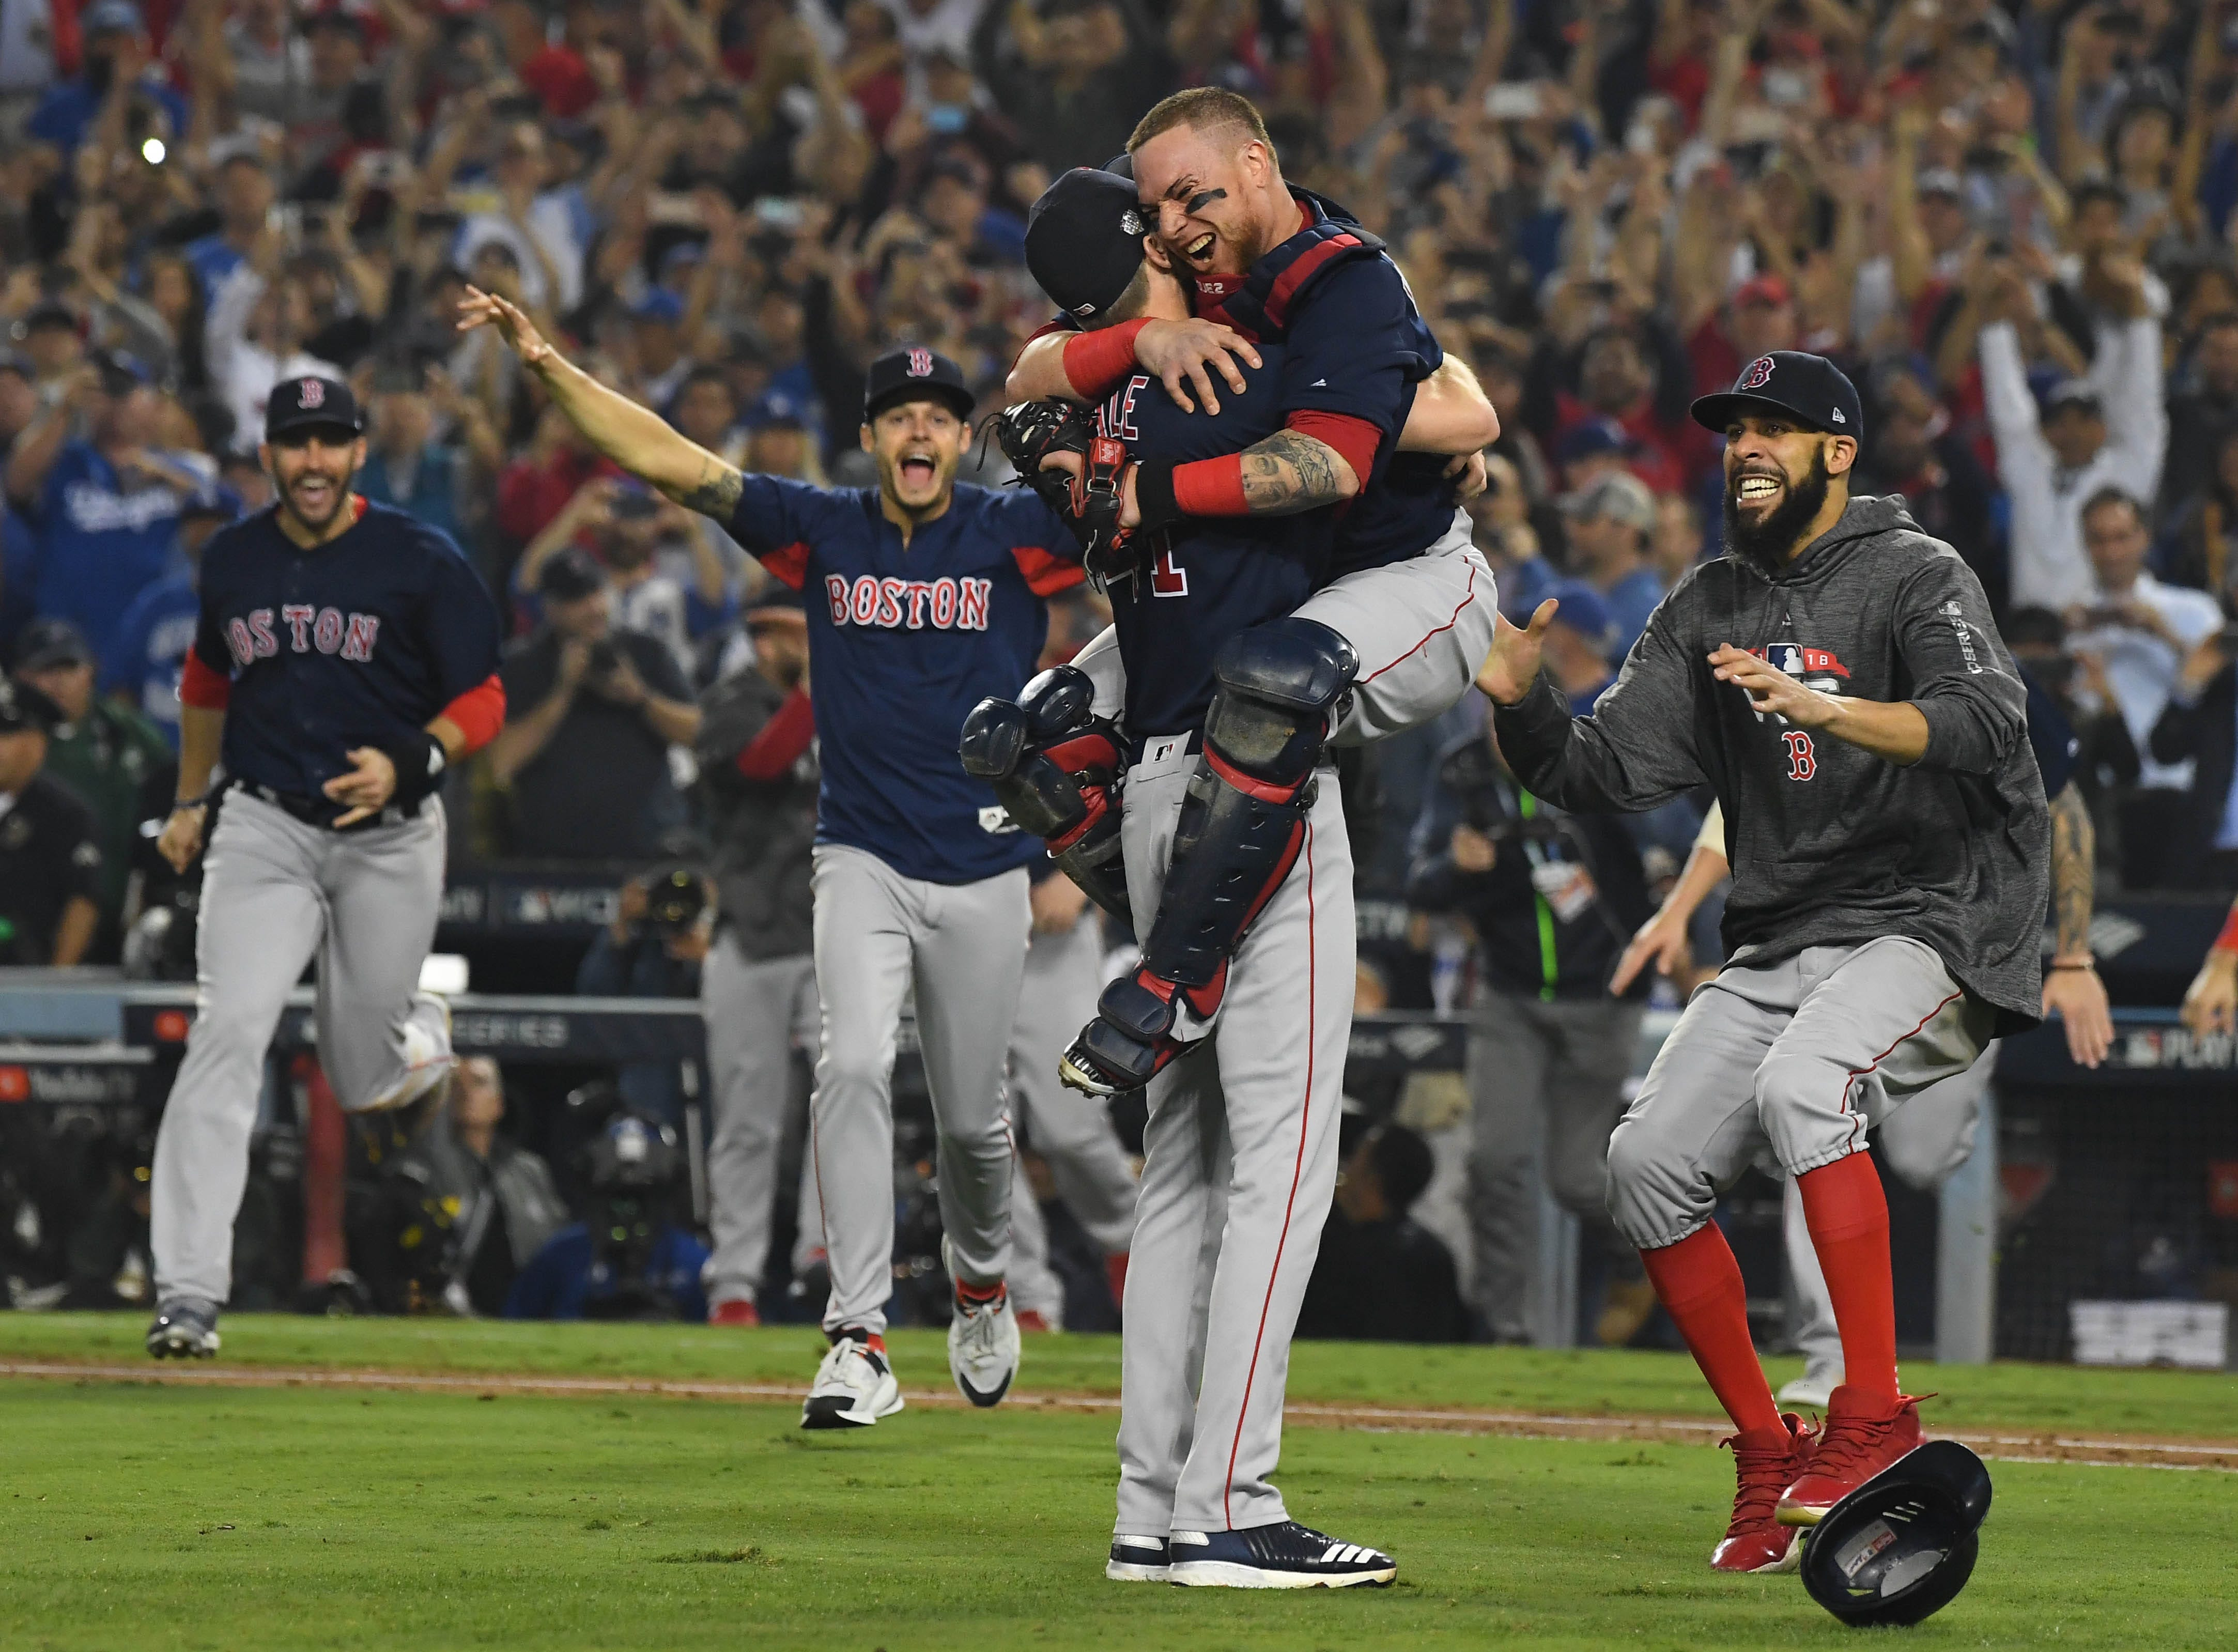 Oct. 28: The Boston Red Sox mob pitcher Chris Sale after beating the Los Angeles Dodgers in Game 5 to win the World Series.